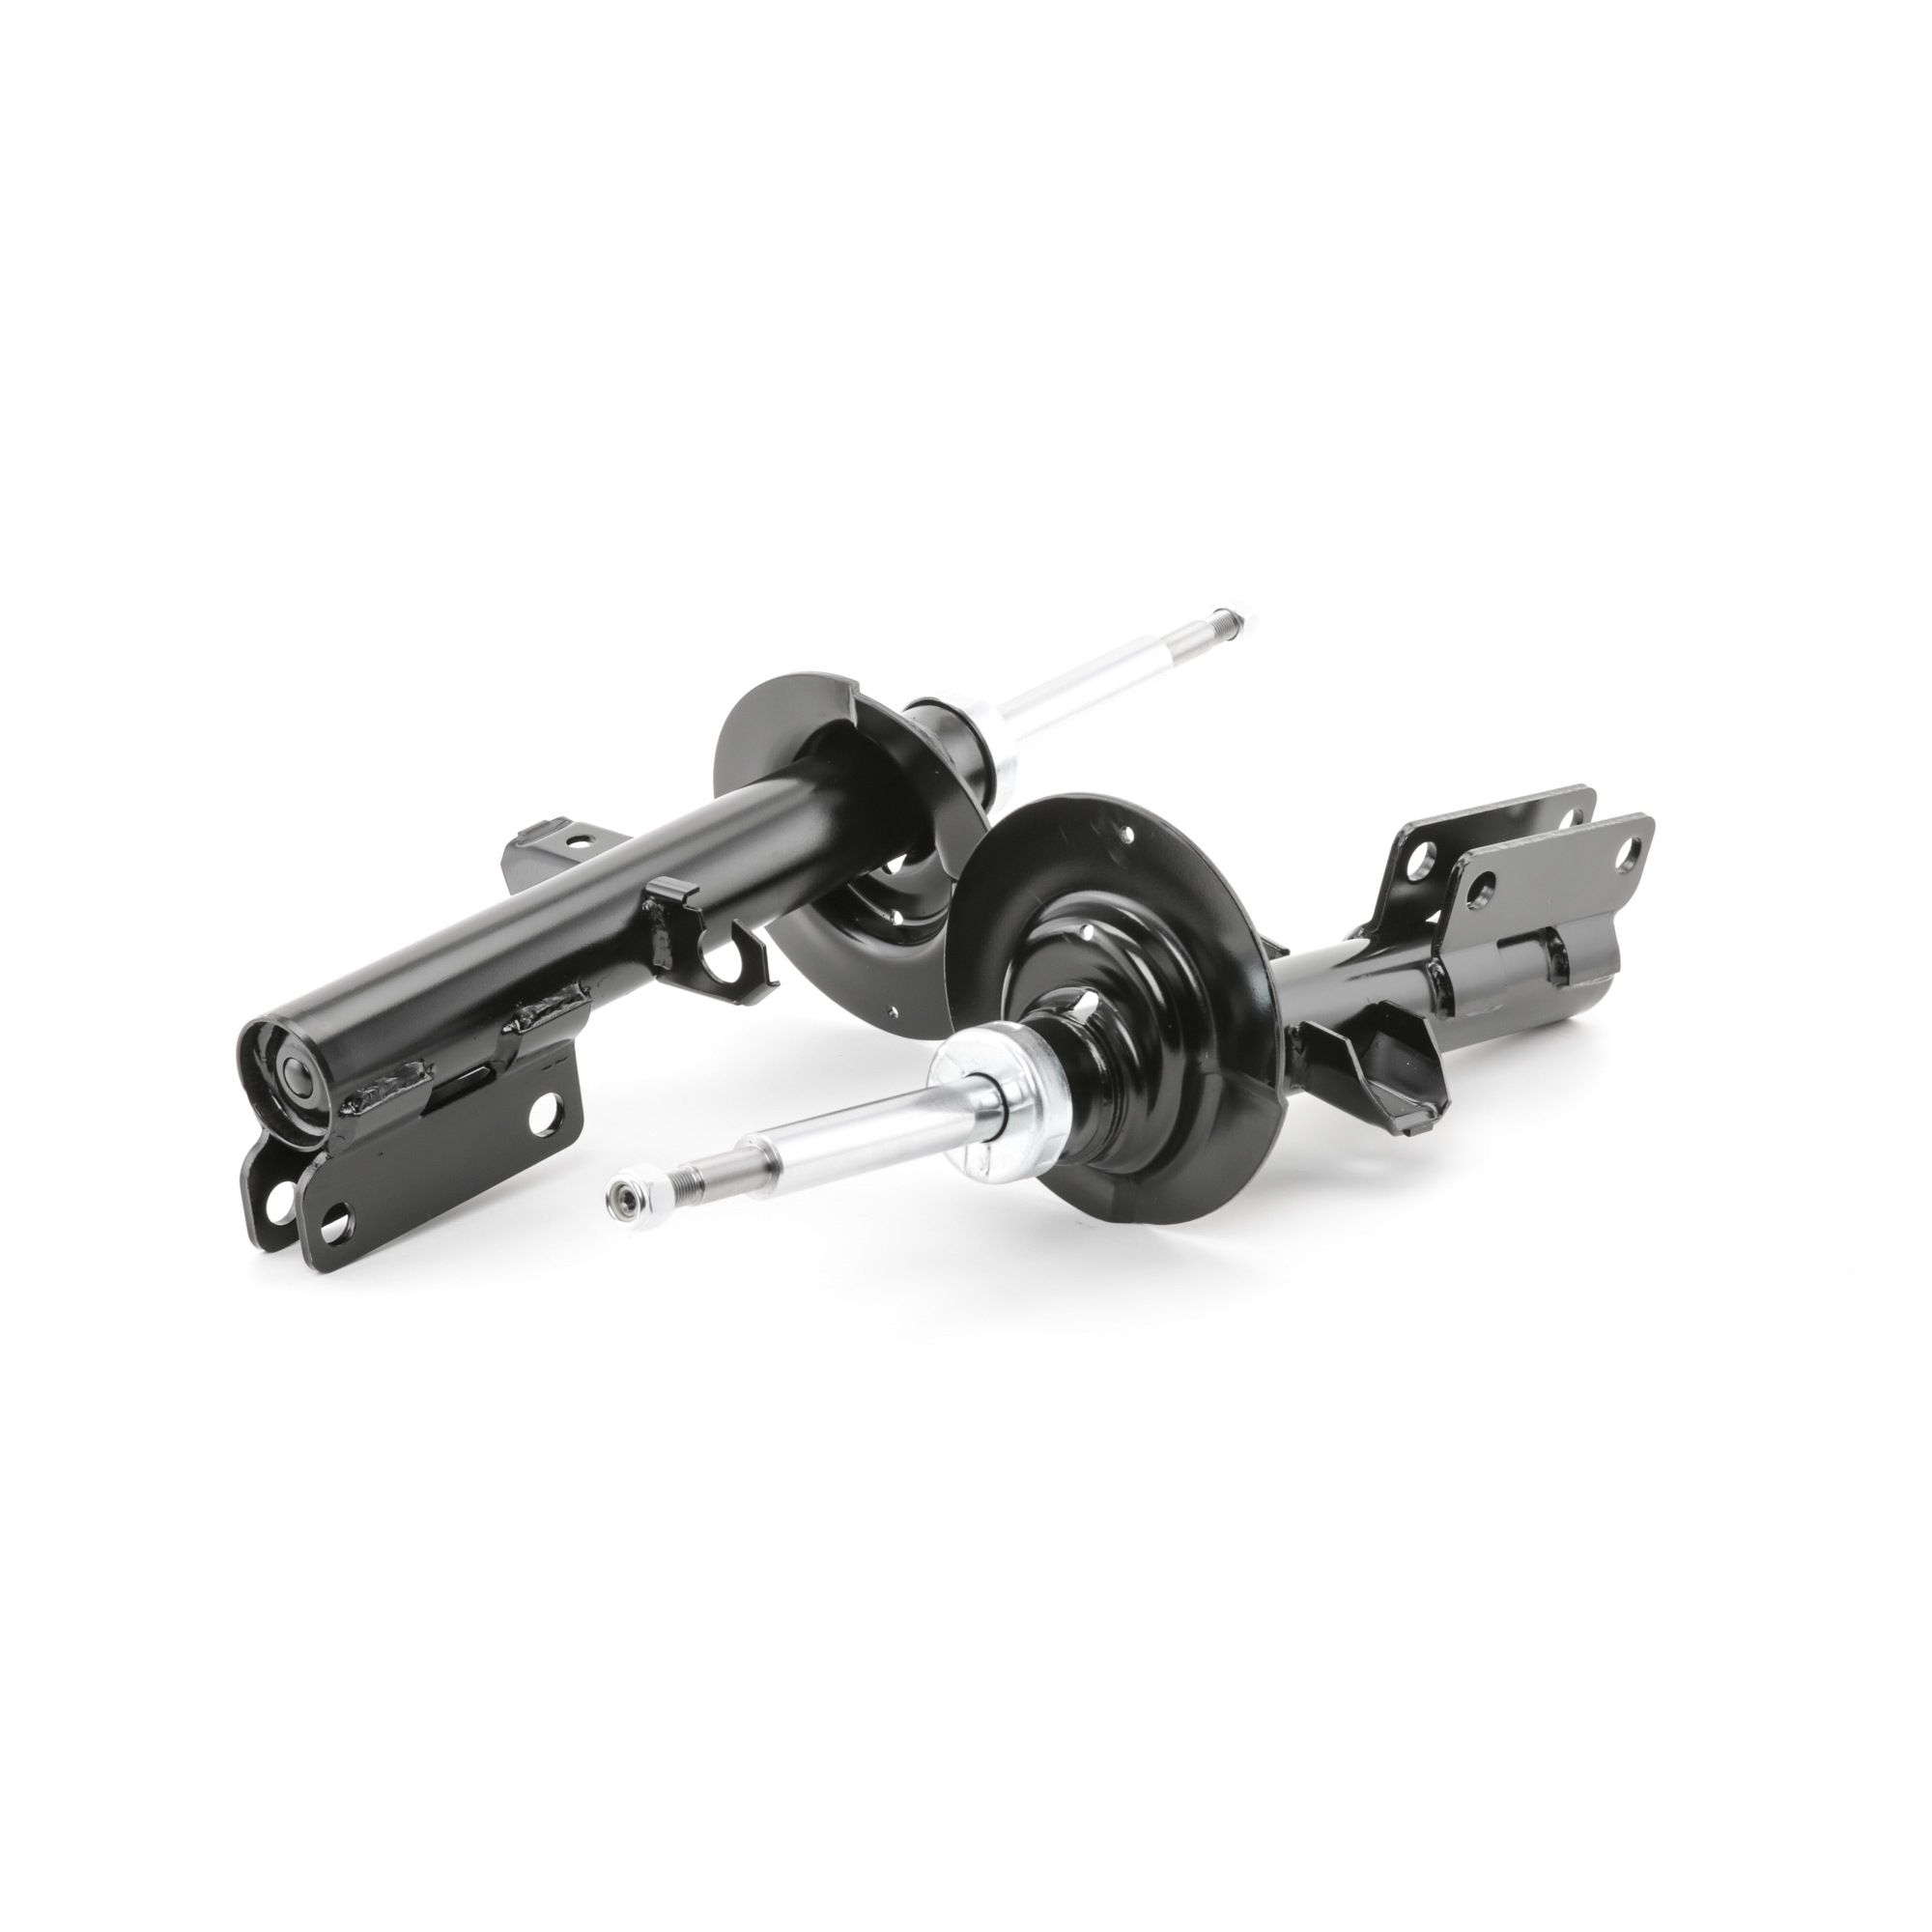 Shock Absorber RIDEX 854S1878 rating